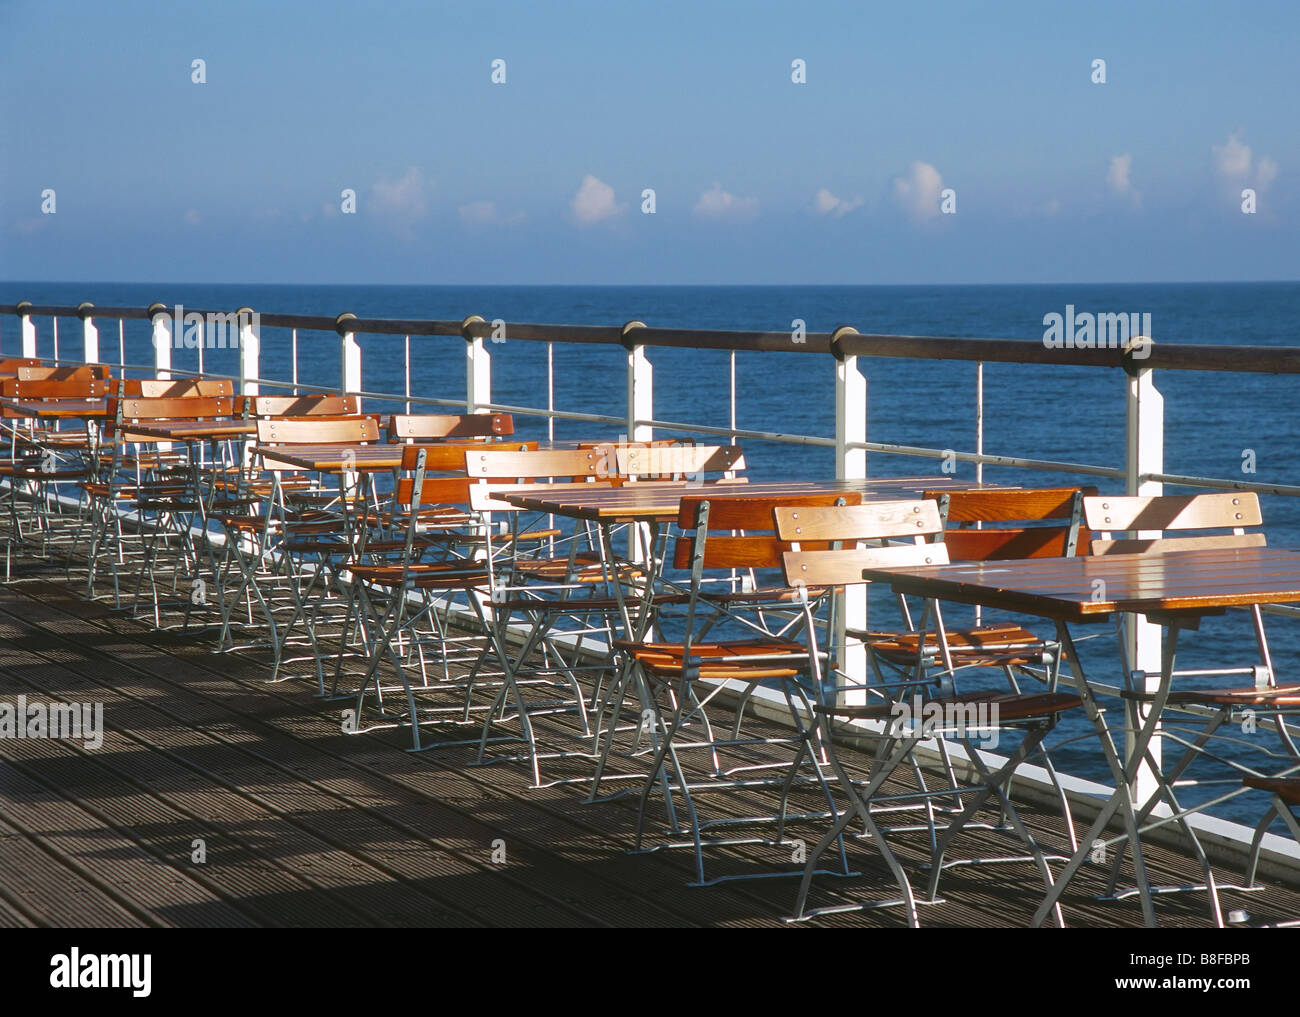 Empty chairs and tables on terrace at sea - Stock Image